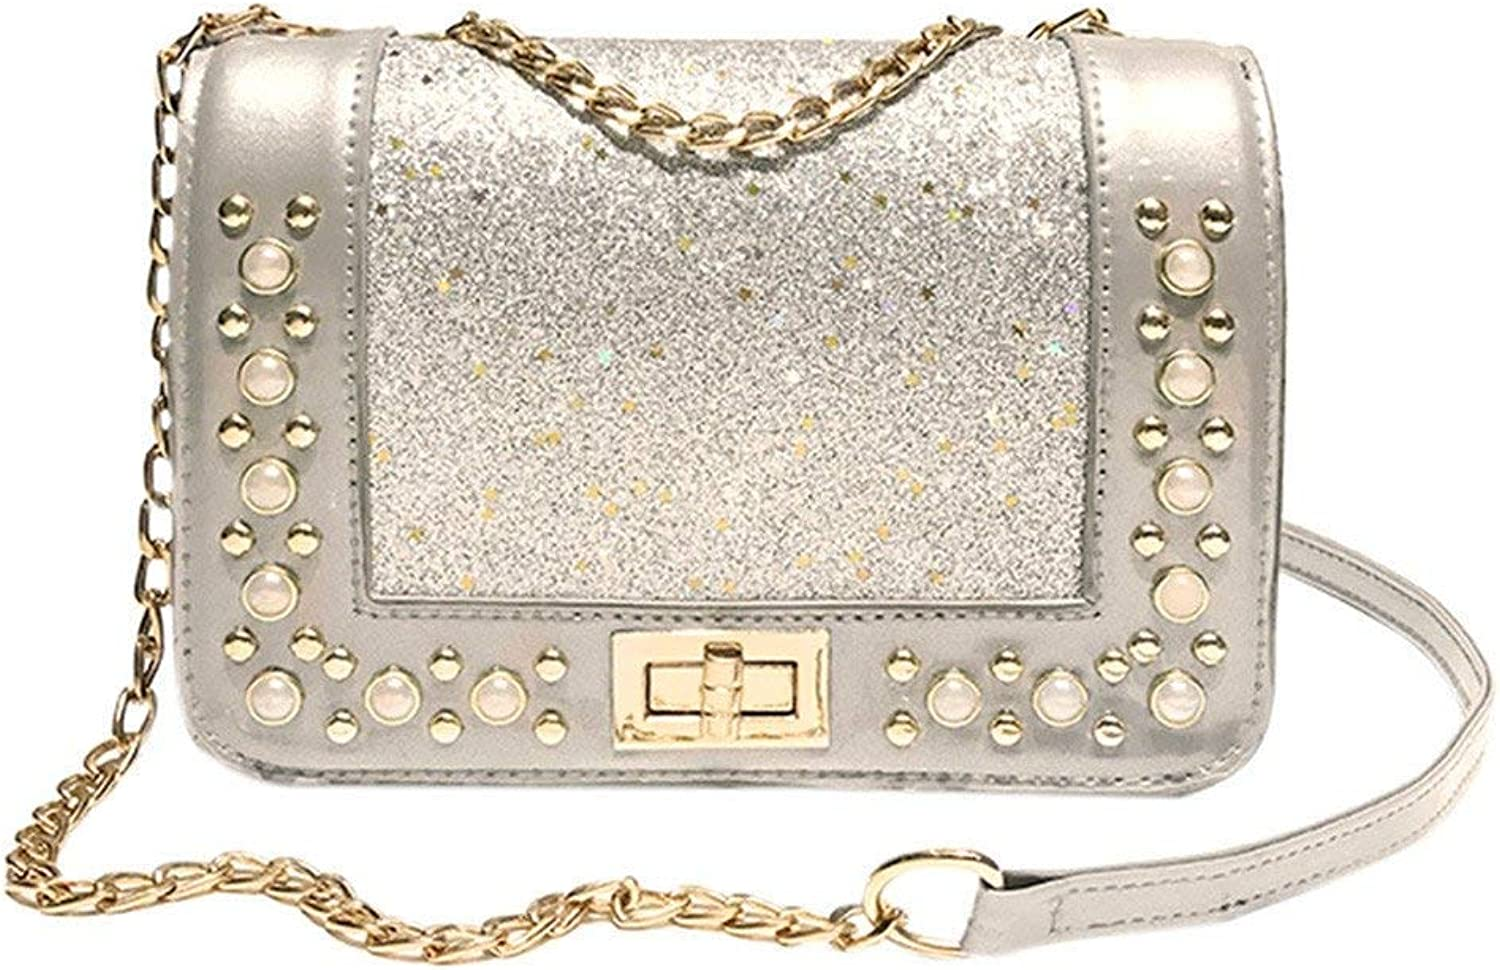 Bloomerang Fashion Women Sequins Leather Crossbody Bag Coin Bag Phone Bag Shoulderag Women's Handbags Totes Shoulder Bags bolsos muj 75 color Silver Mini(Max Length 20cm)